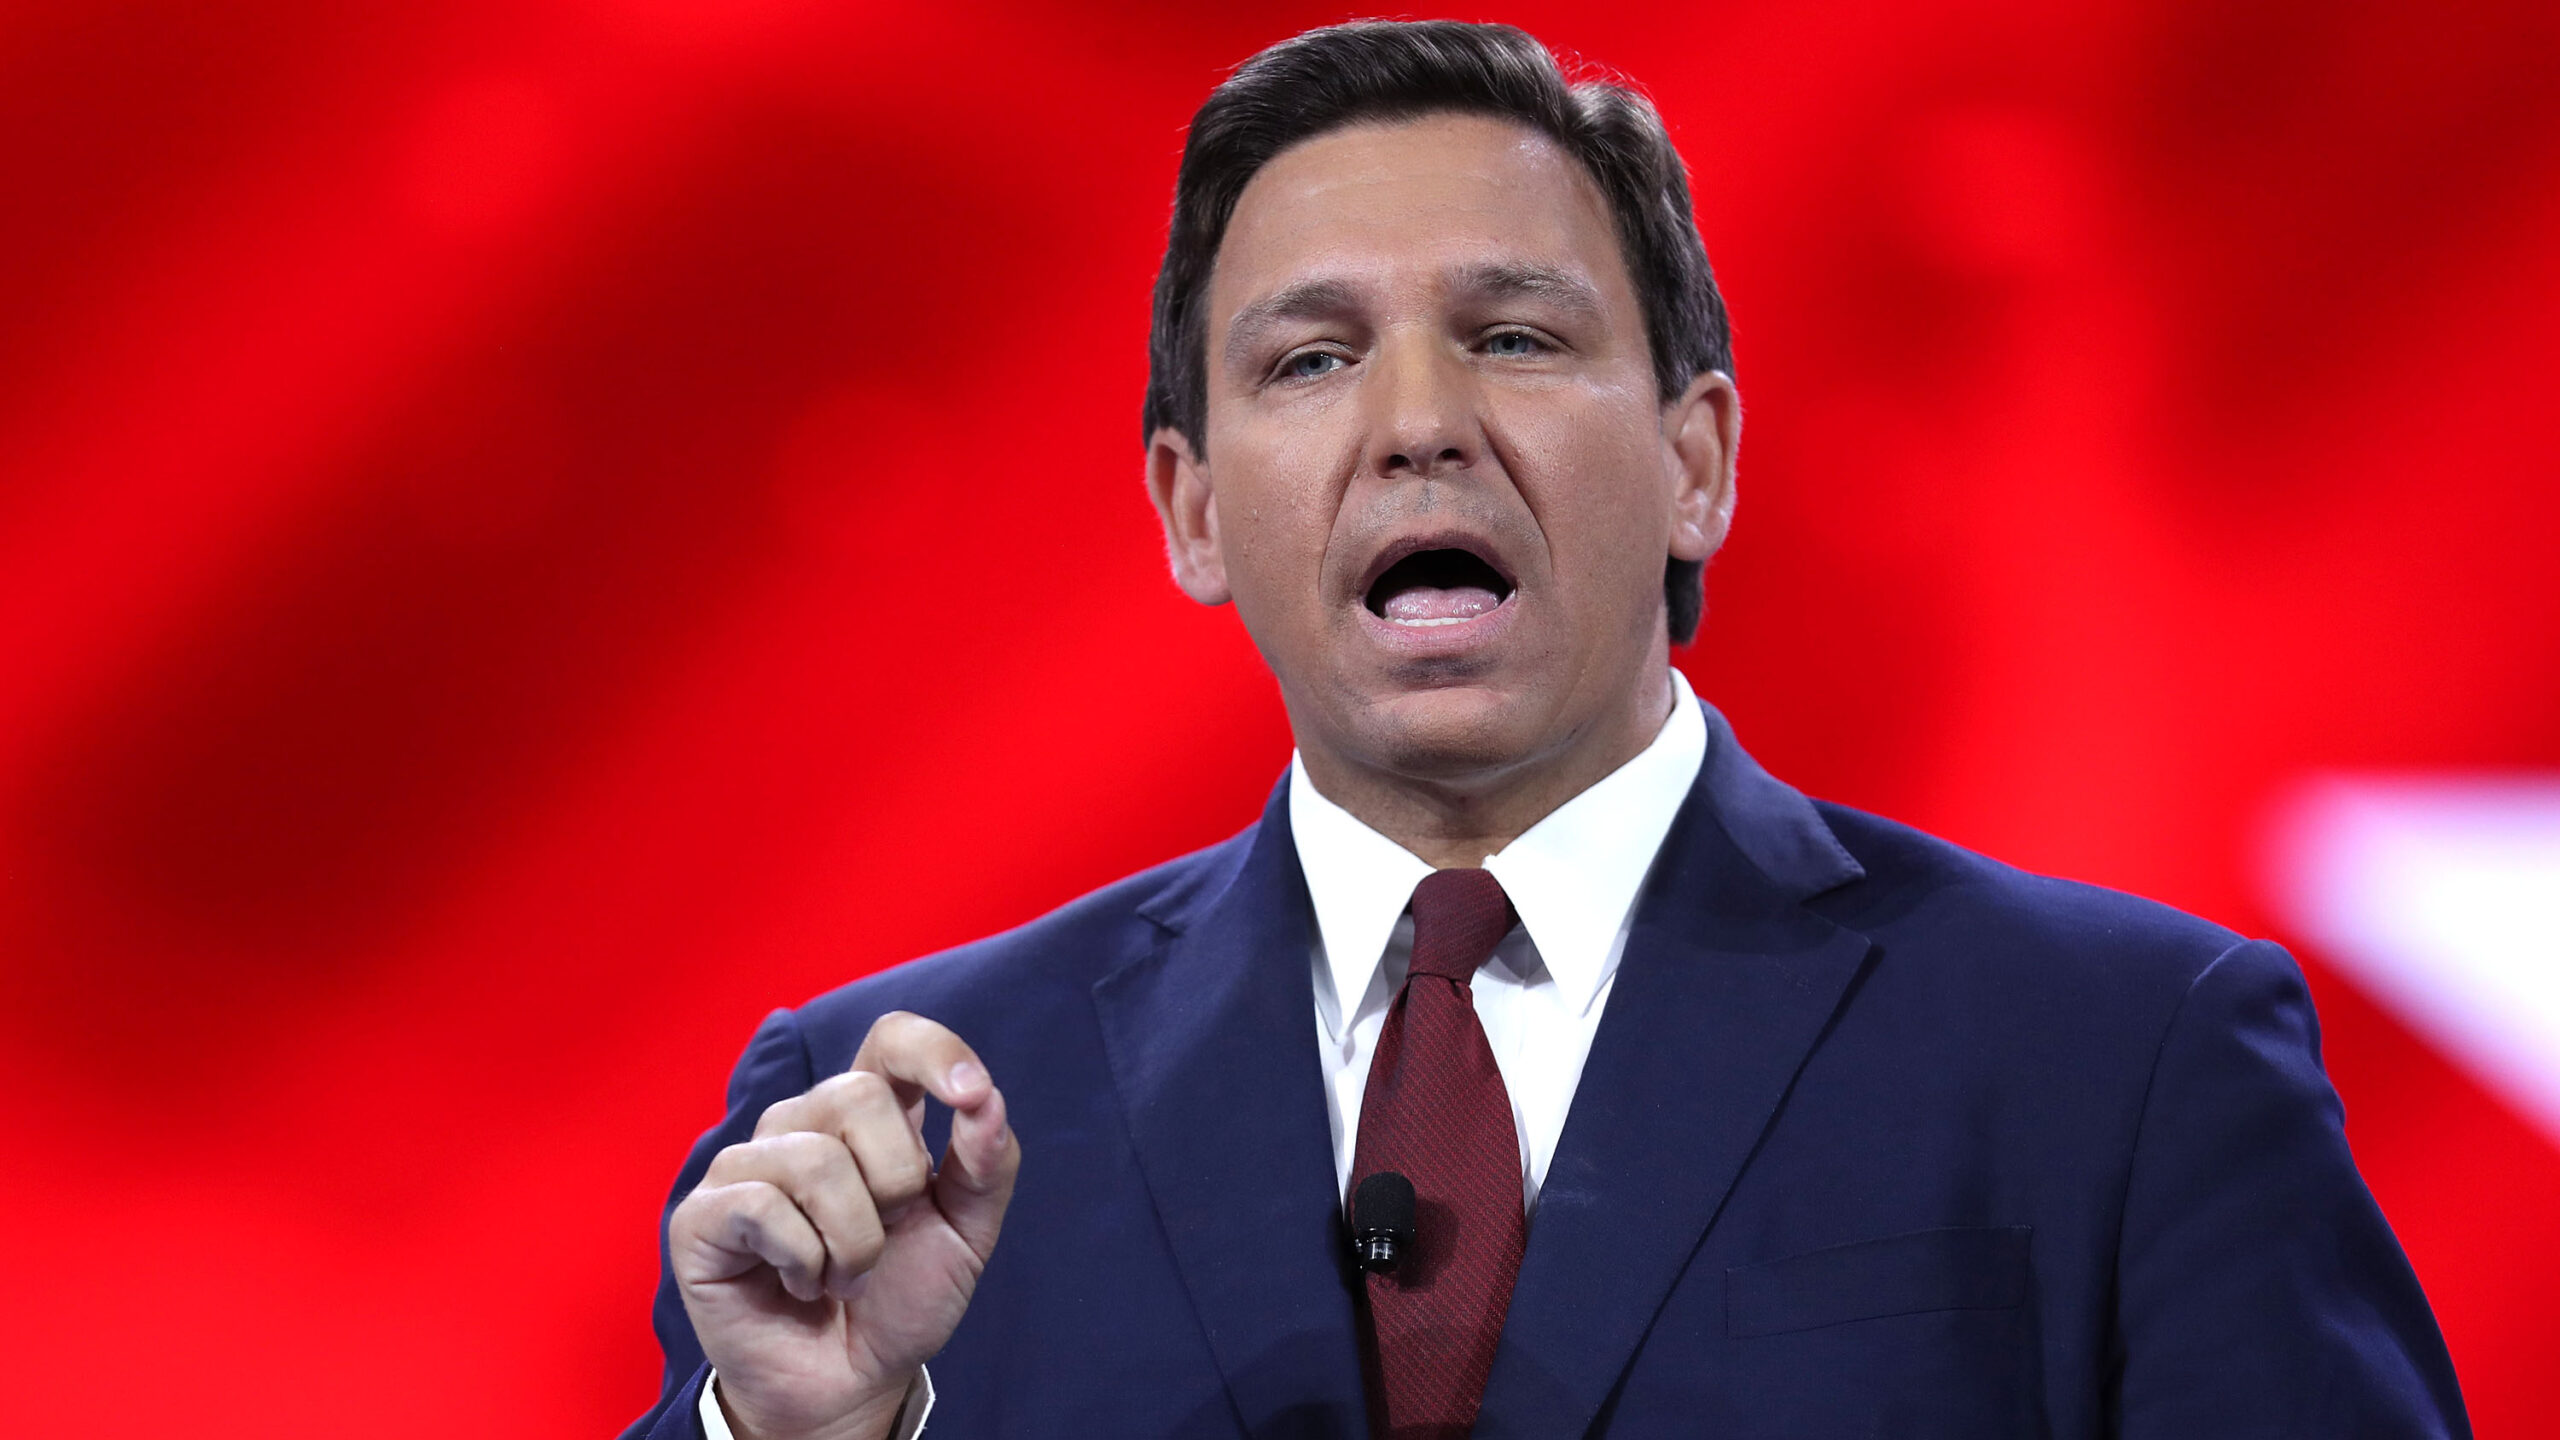 Ron DeSantis At CPAC Highlights Future Of Republican Party Moving Forward: 'Don't Ever Back Down'